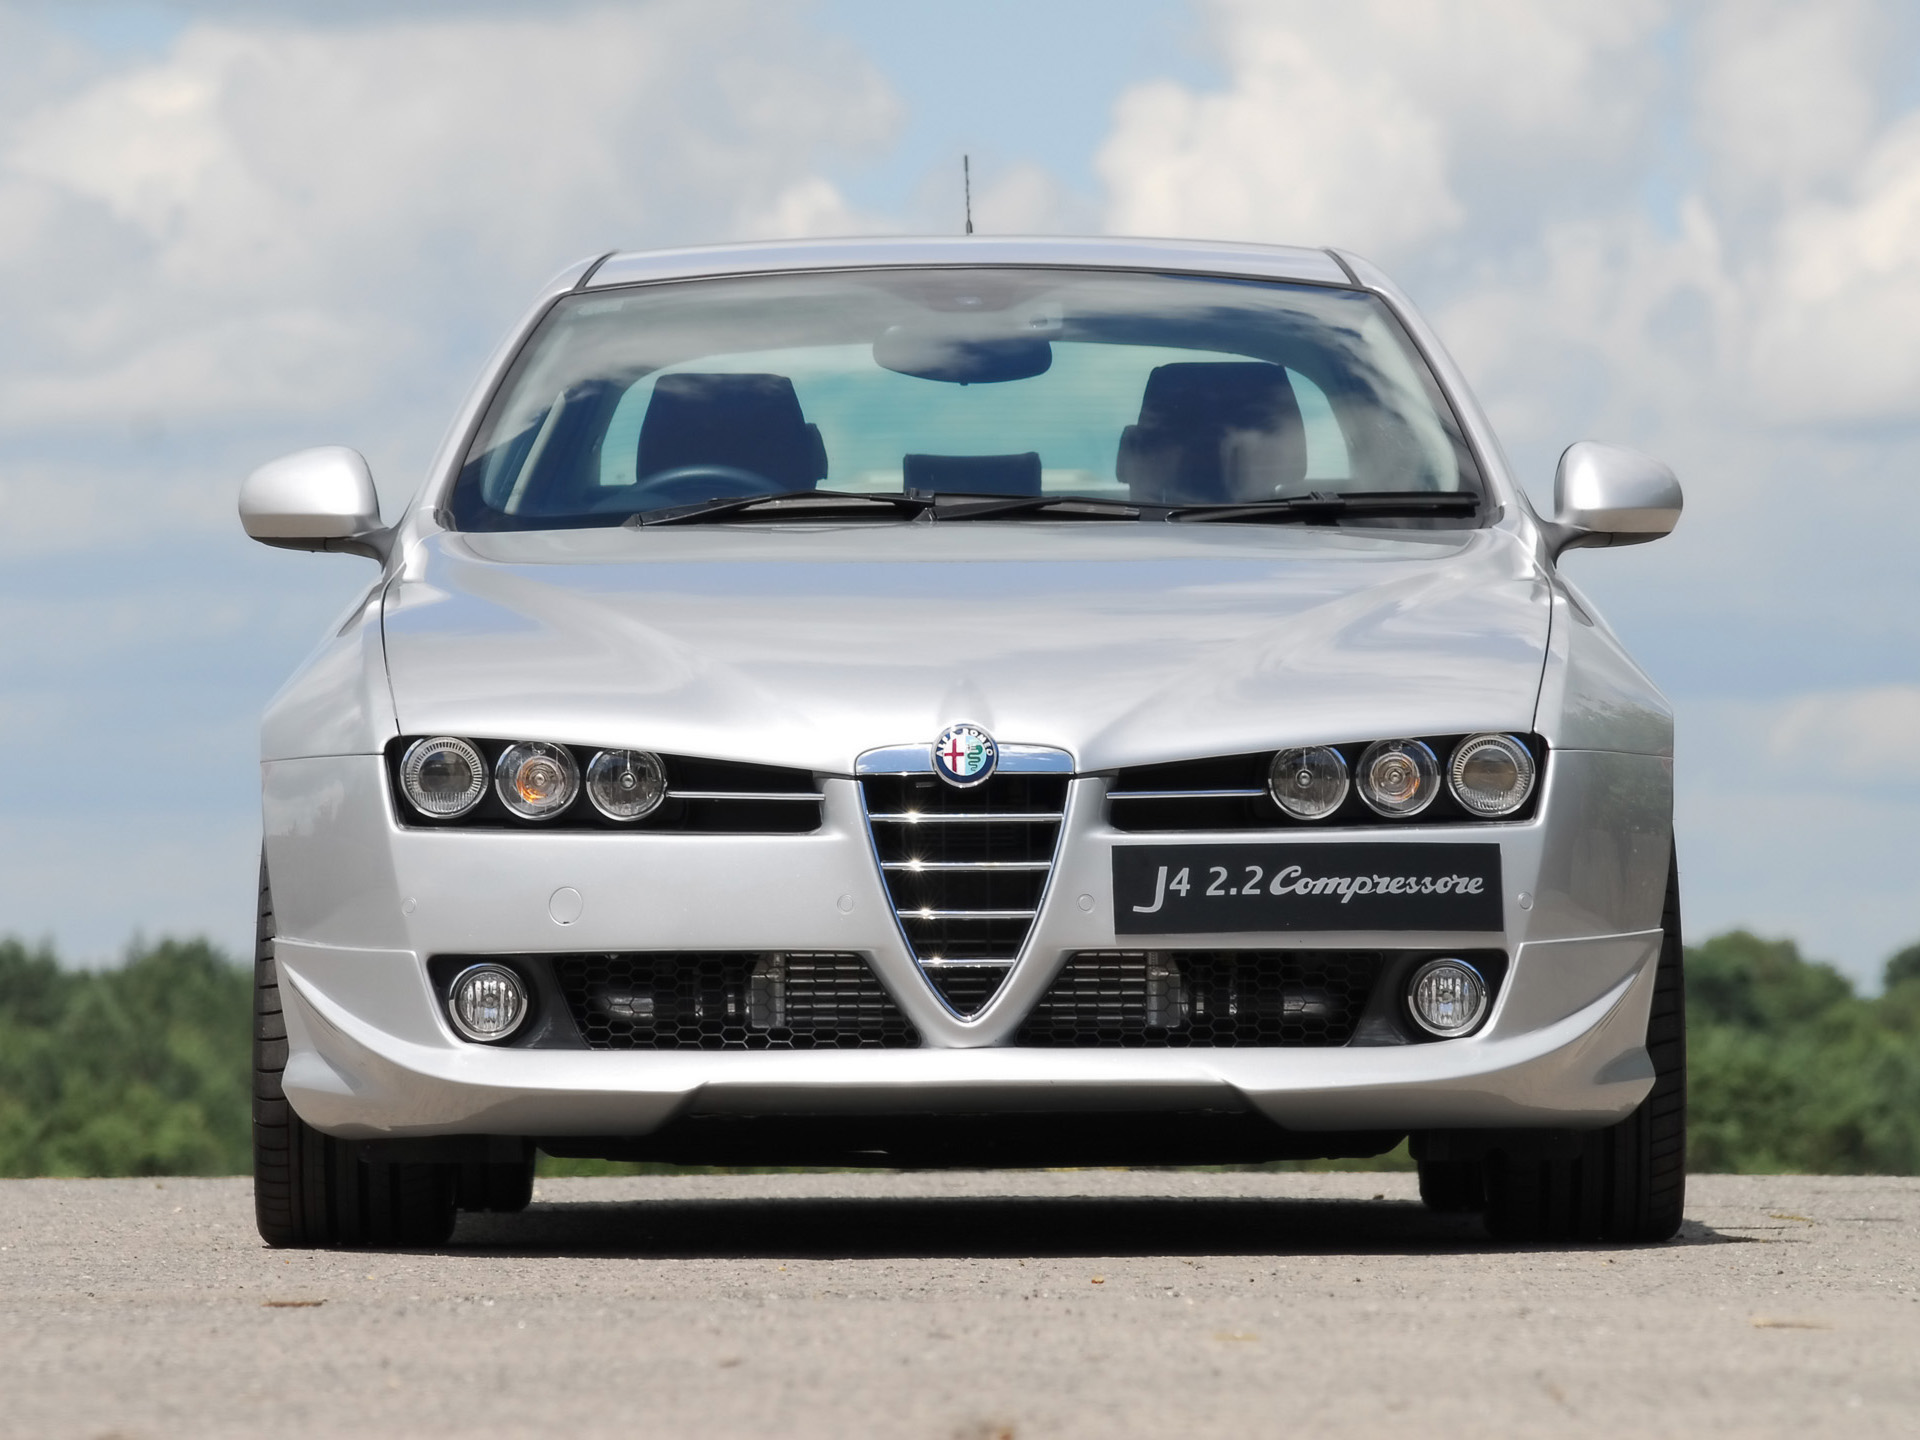 alfa romeo 159 photos photogallery with 42 pics. Black Bedroom Furniture Sets. Home Design Ideas